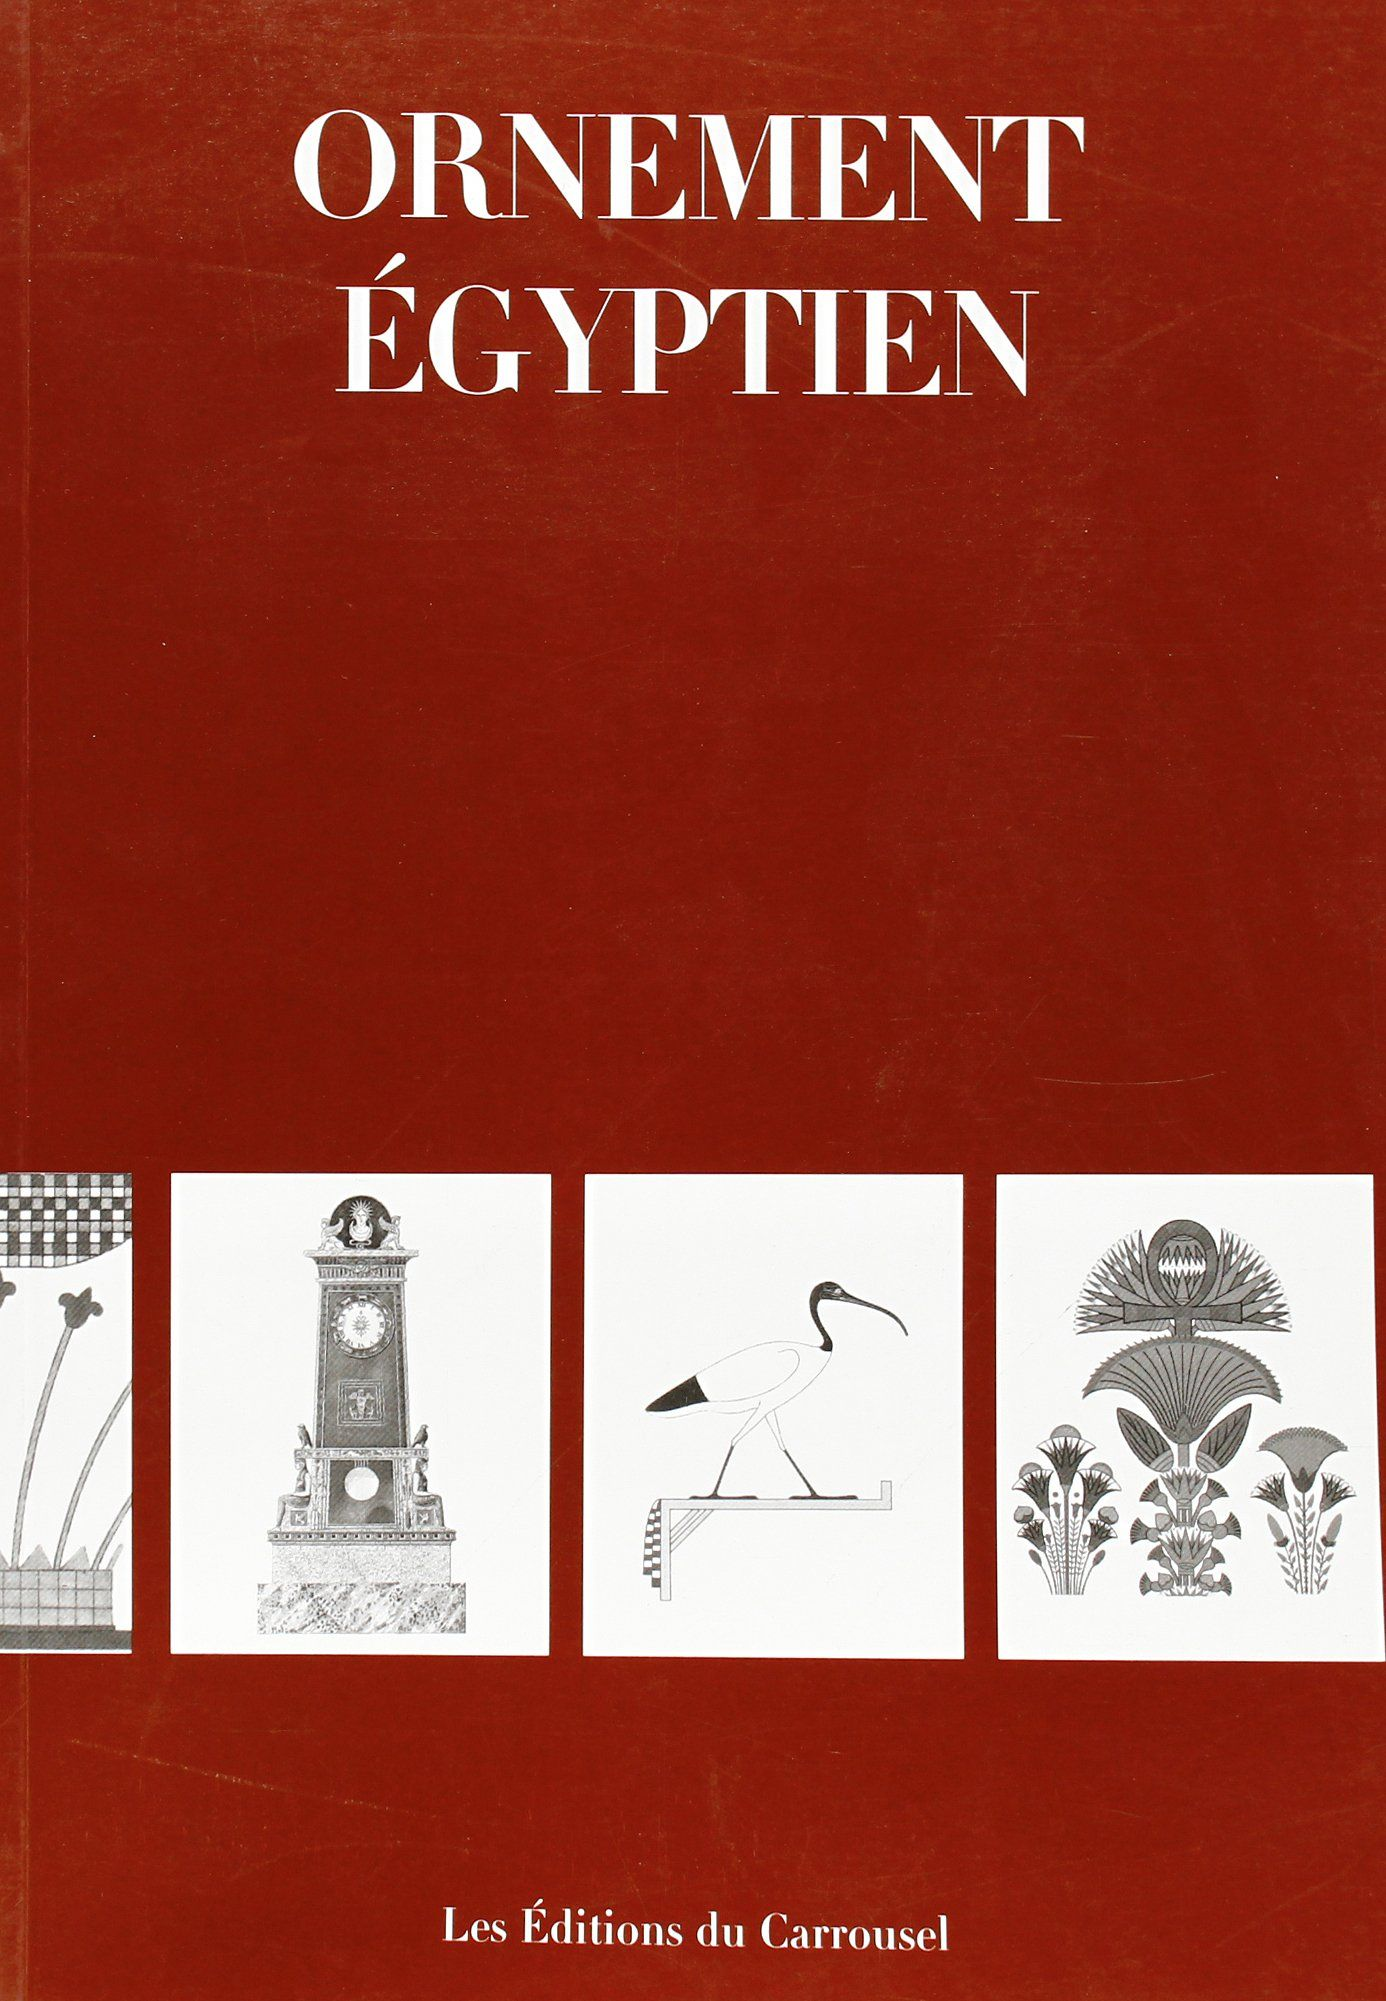 ORNEMENT EGYPTIEN